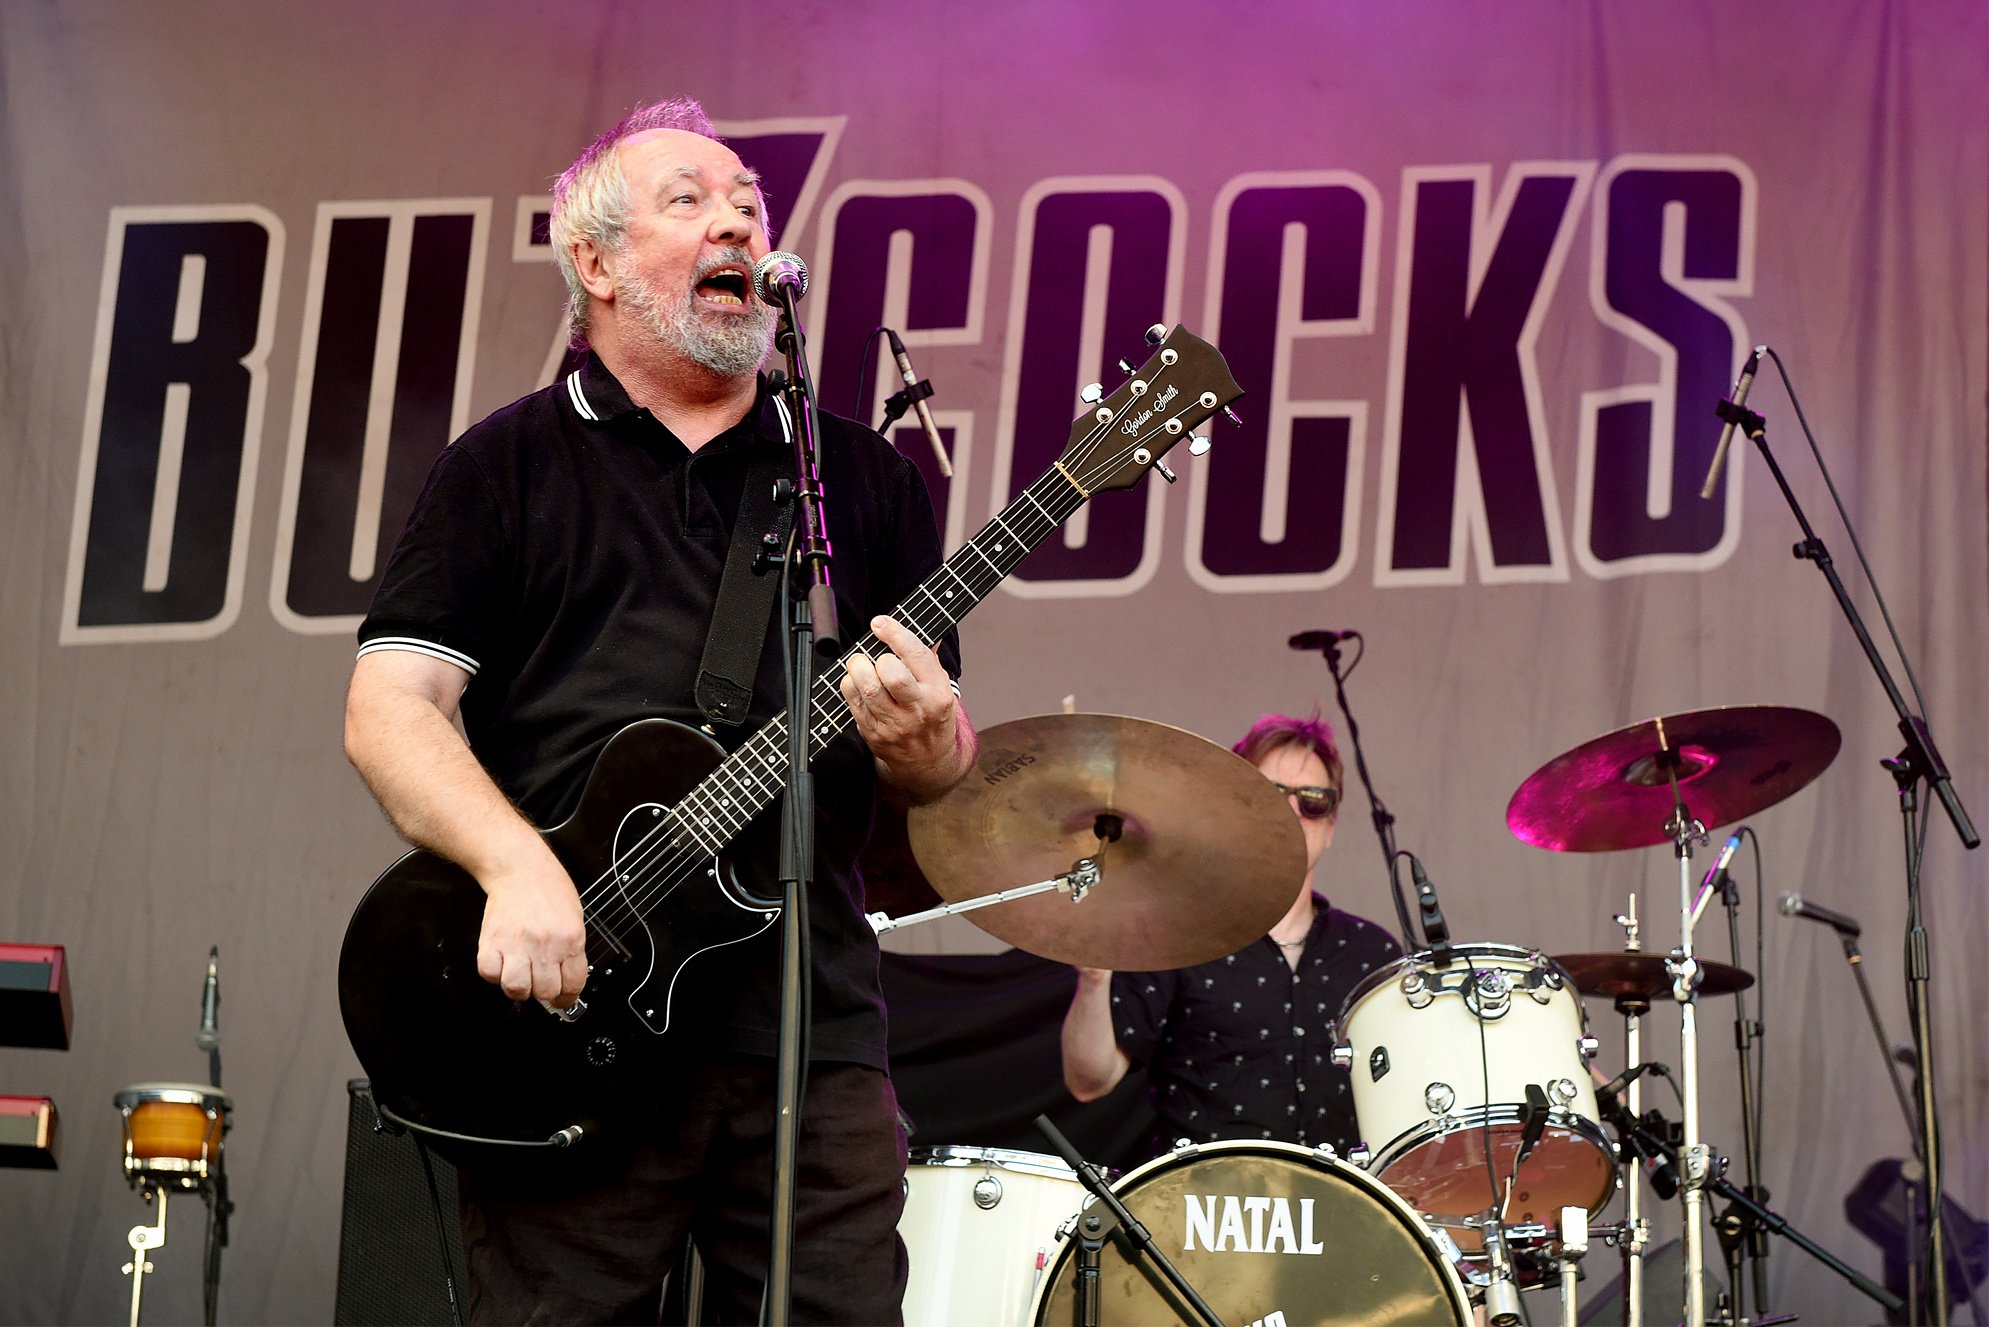 Pete Shelley of Buzzcocks performs during Sounds of the City at Castlefield Bowl on July 6, 2018 in Manchester